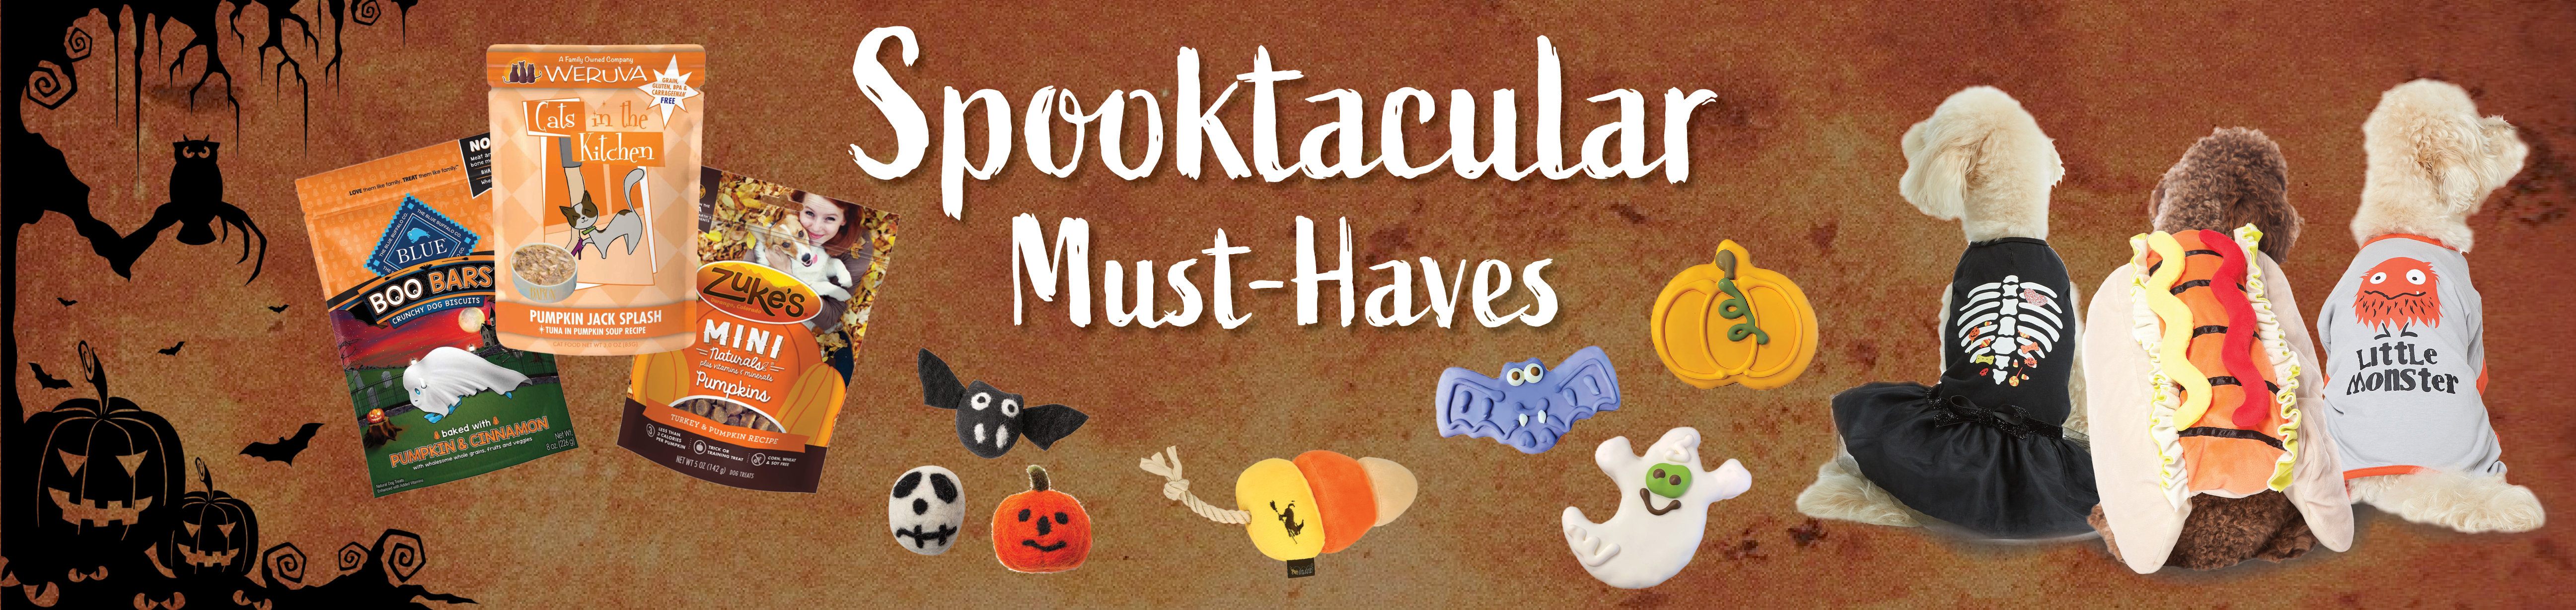 Spooktacular Must-Haves